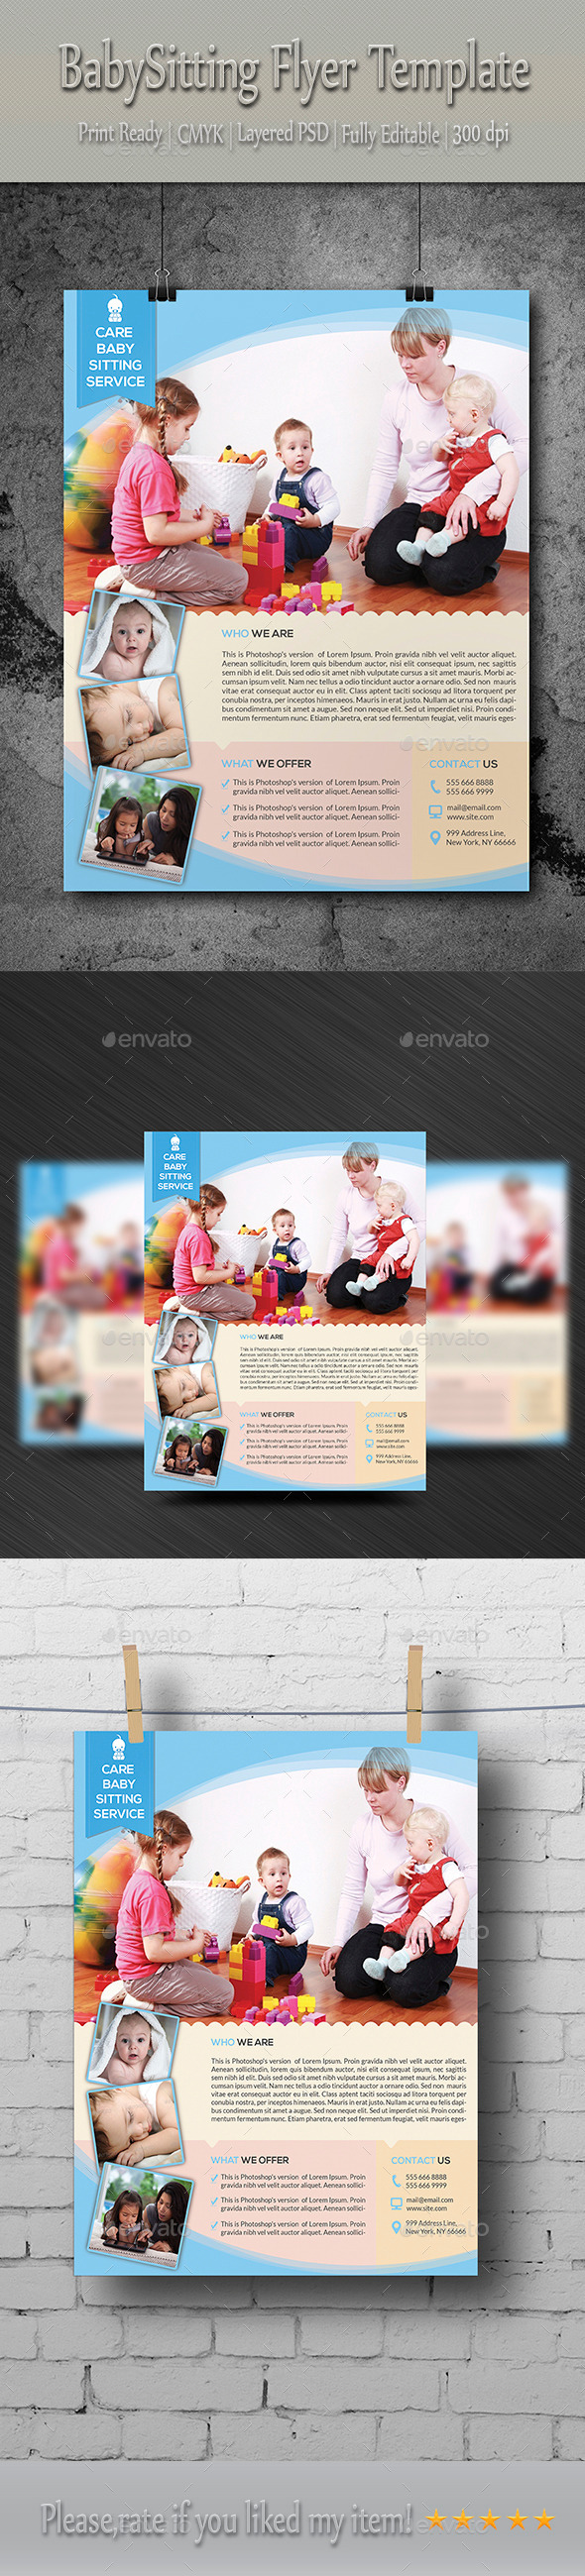 GraphicRiver Babysitting & Daycare Flyer Template 8854508